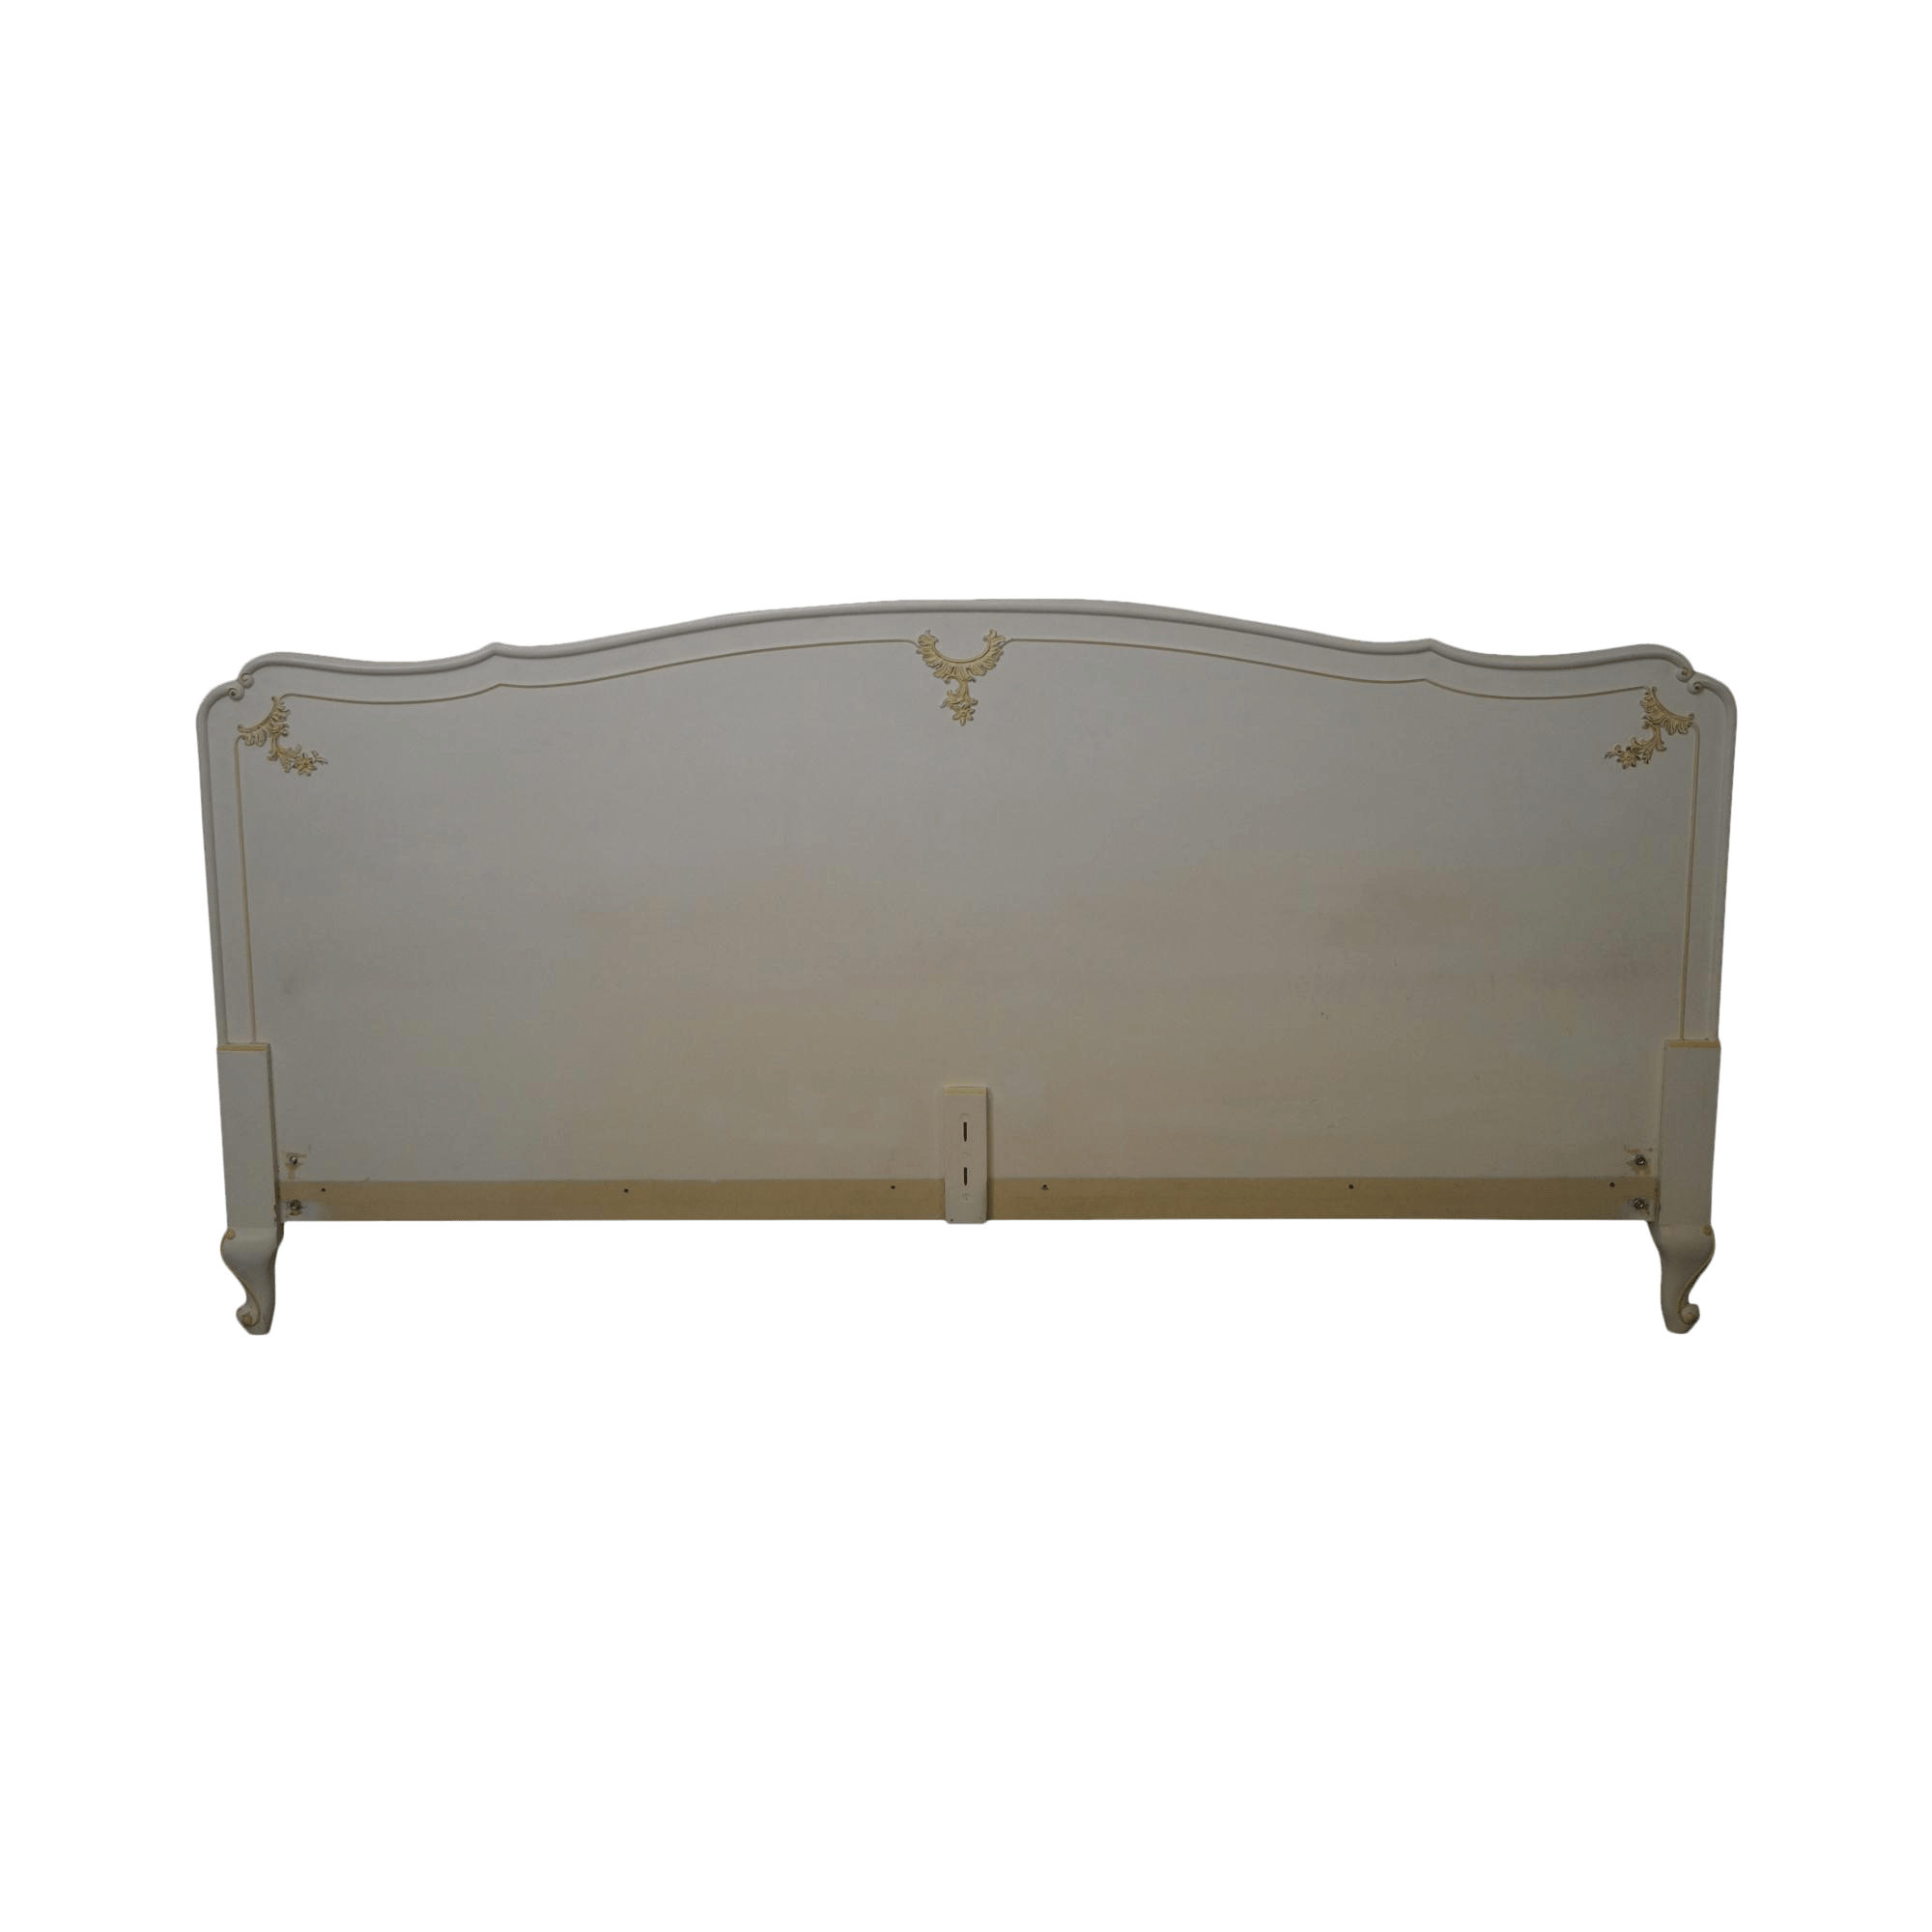 hickory chair king size bed nat's fishing french louis xv-style headboard | chairish